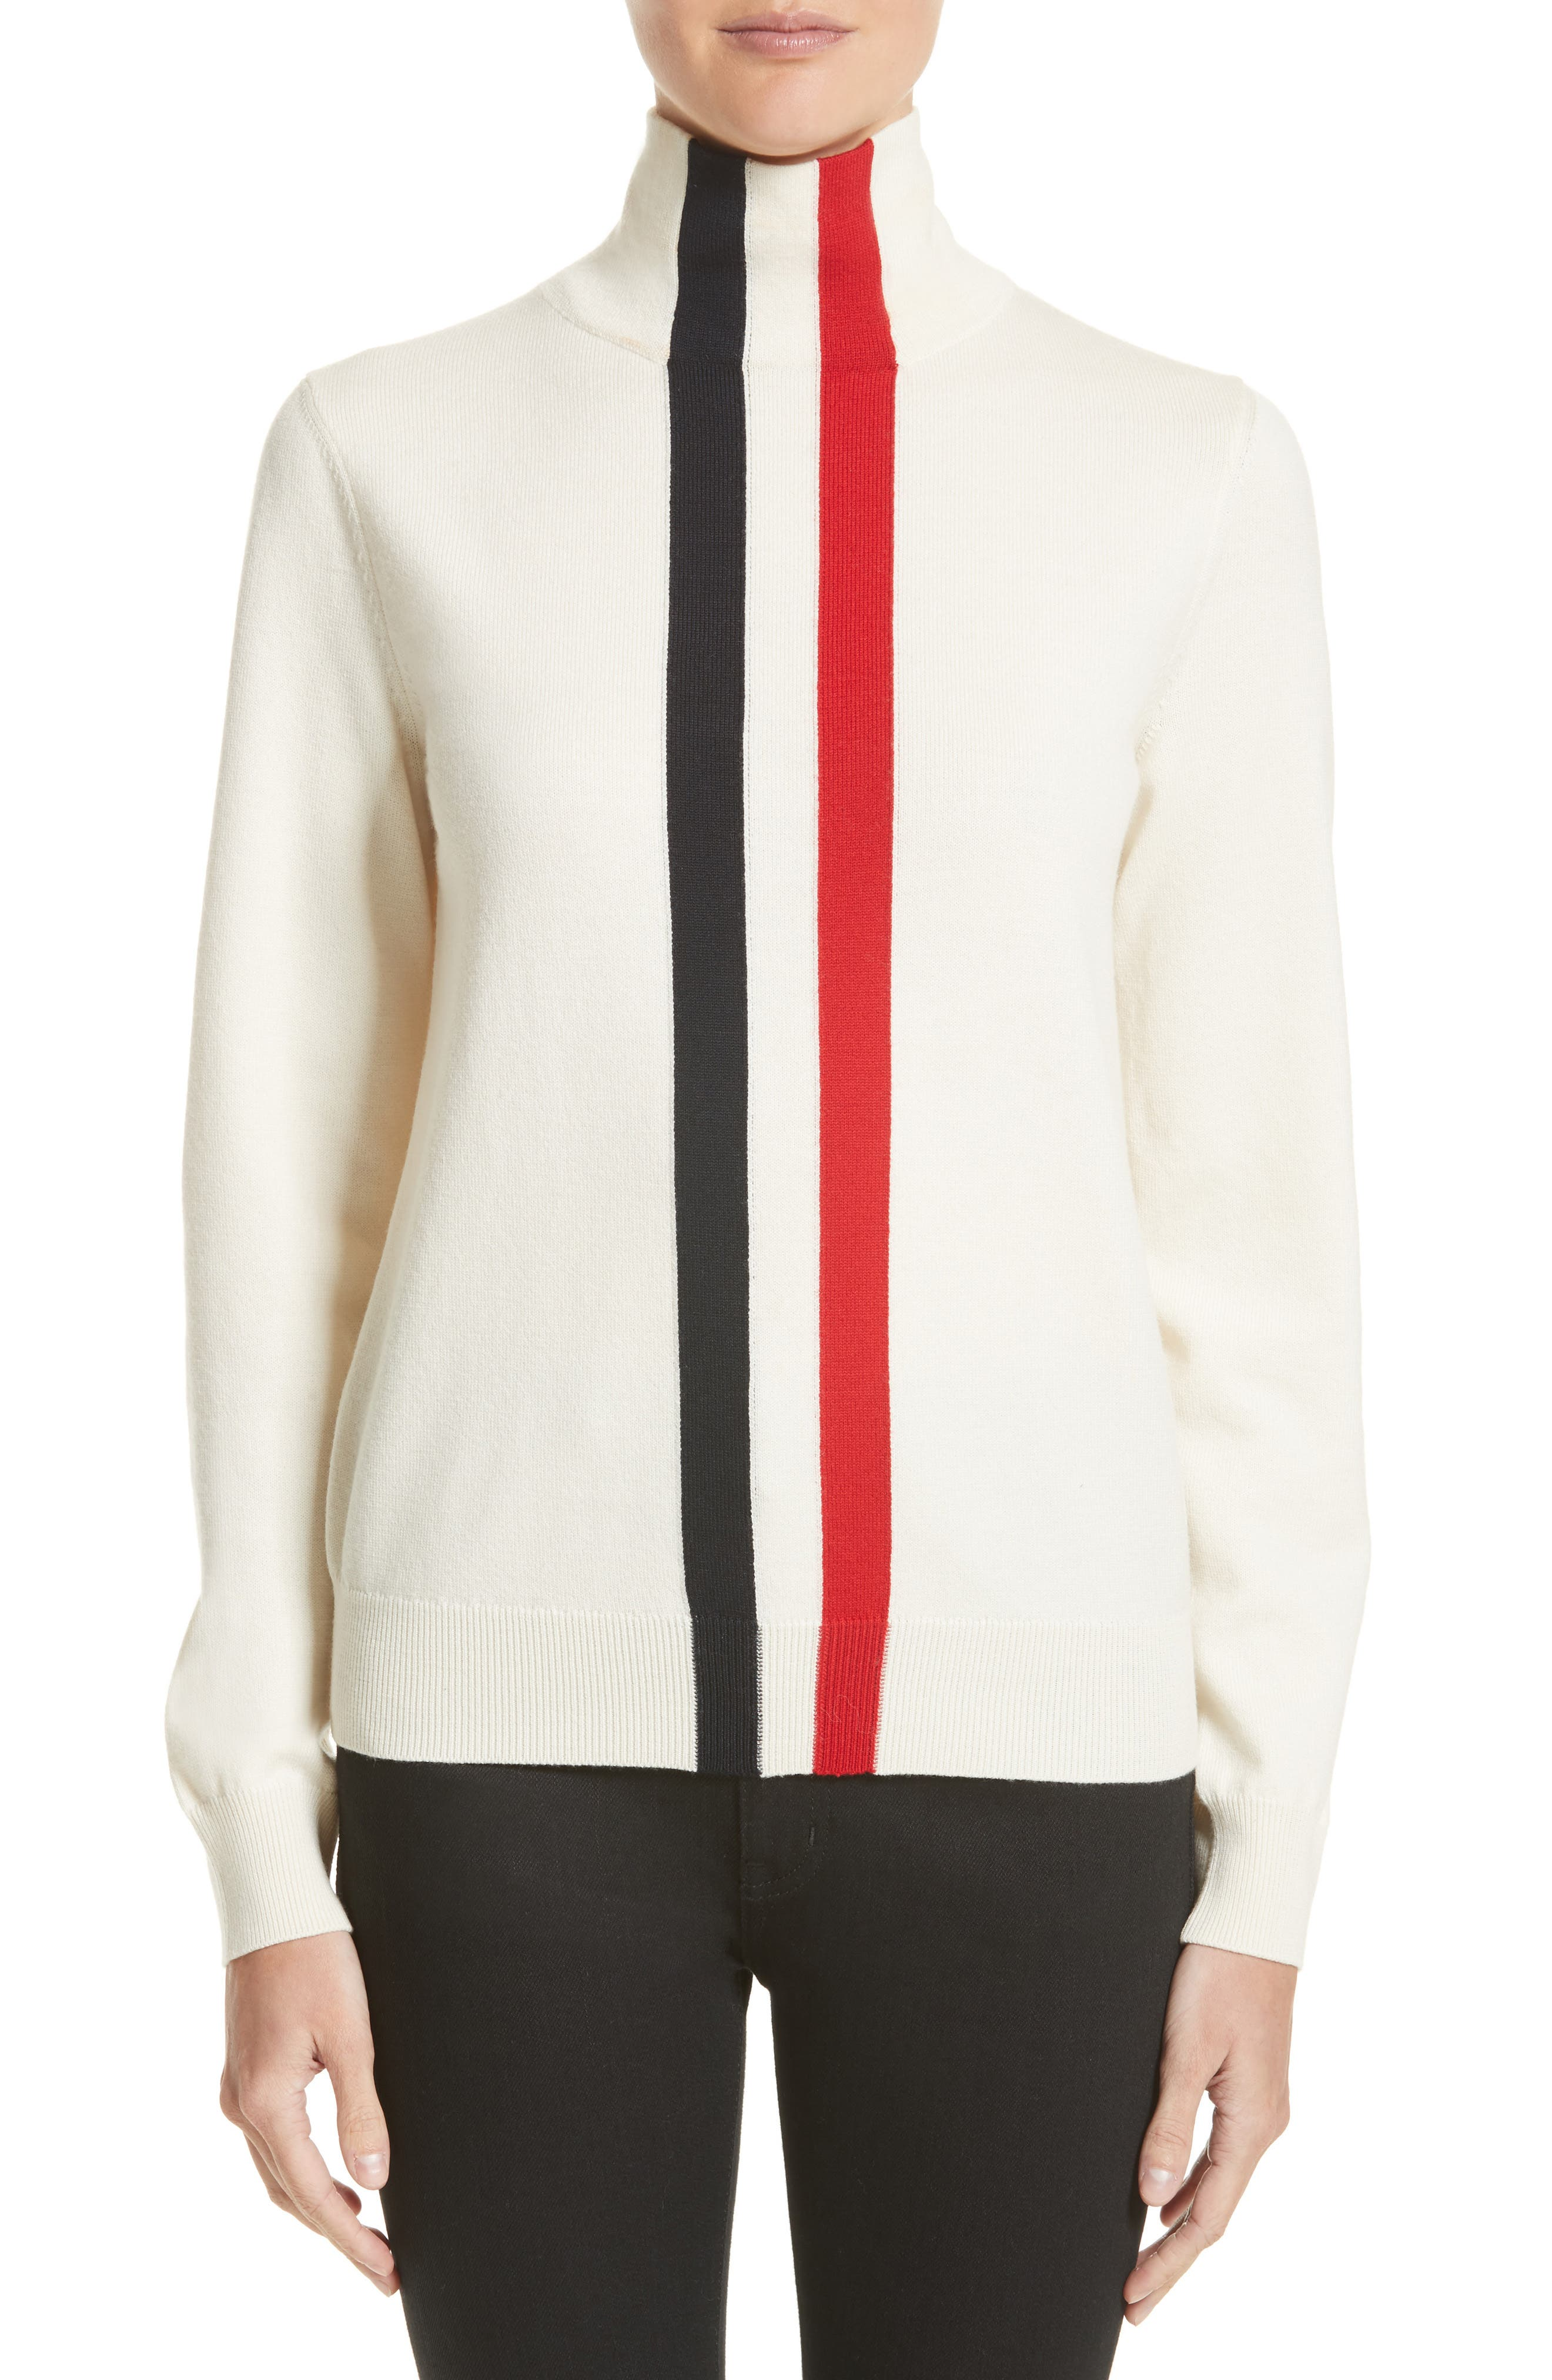 Alternate Image 1 Selected - Moncler Ciclista Tricot Knit Sweater